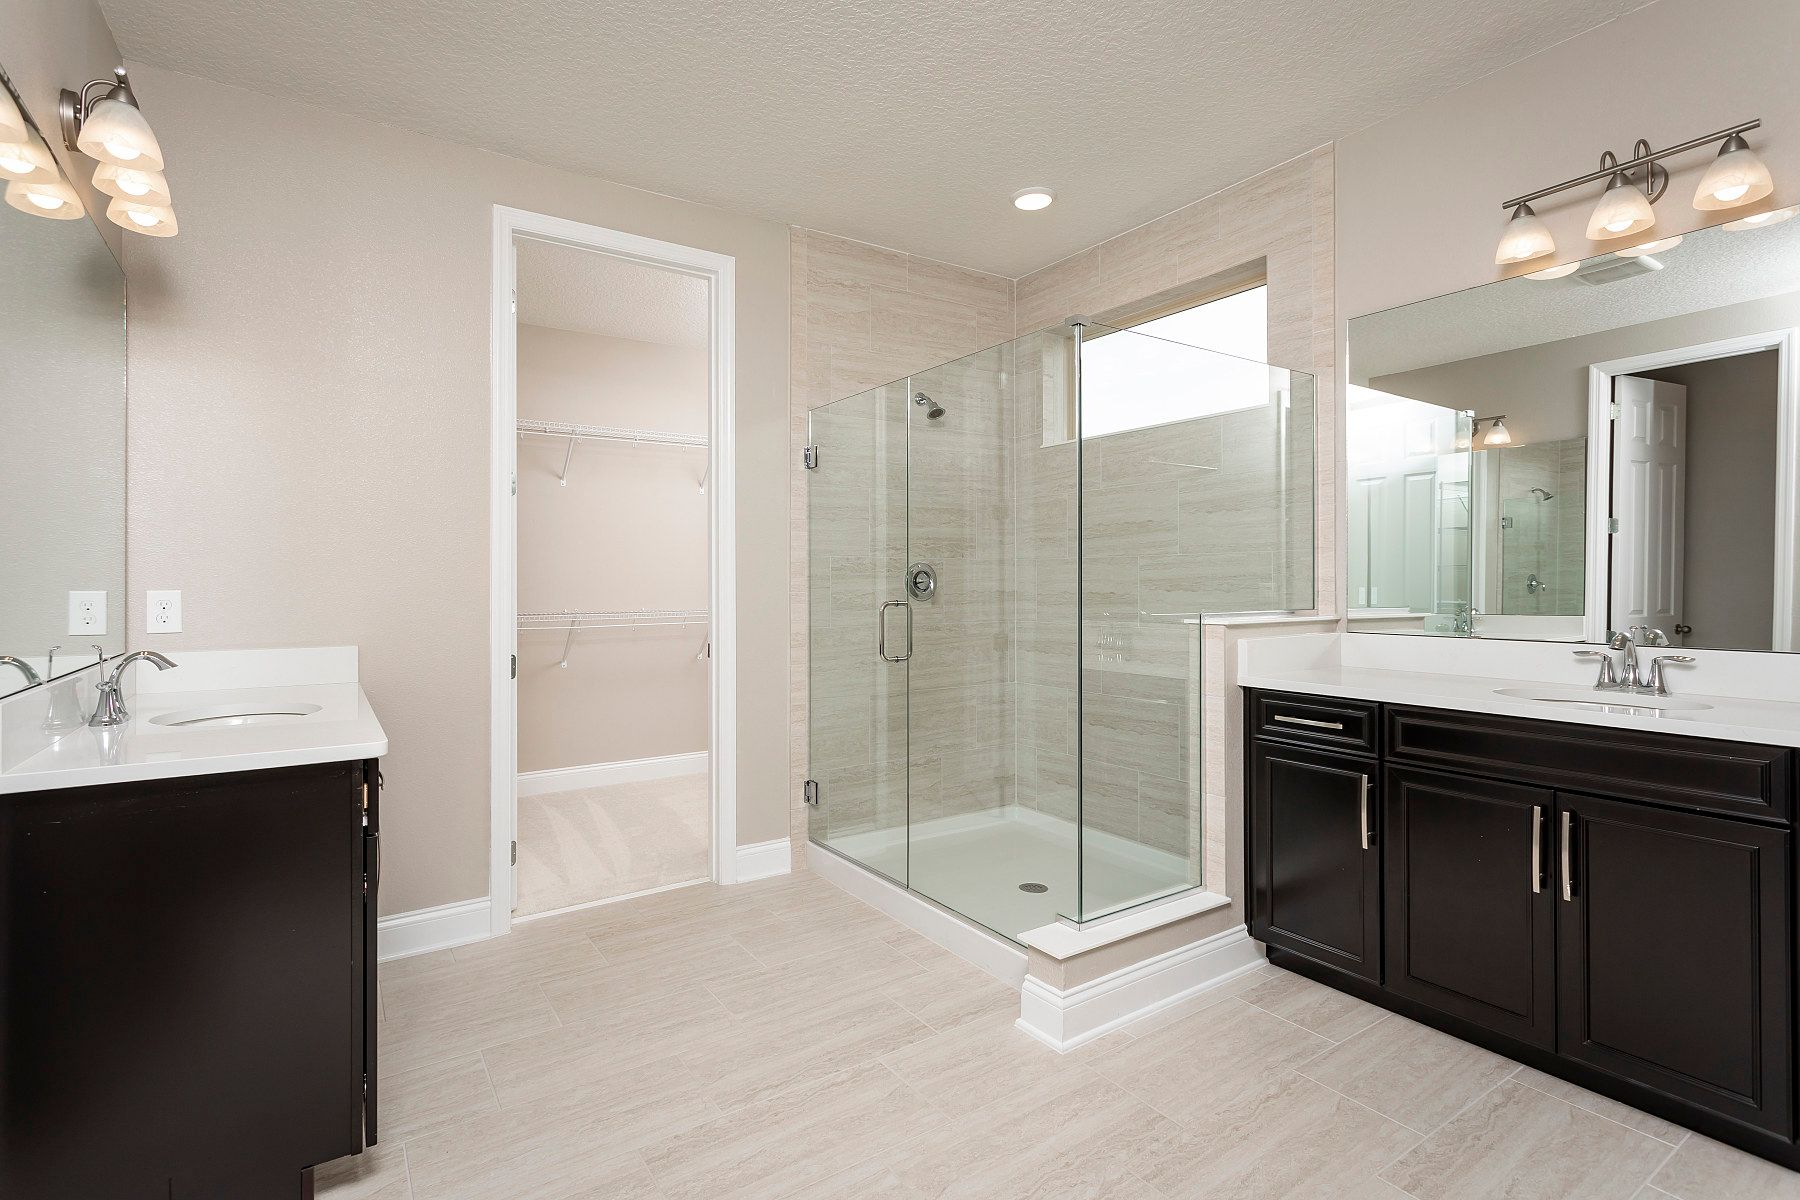 Bathroom featured in the Lakeview Fl By M/I Homes in Orlando, FL